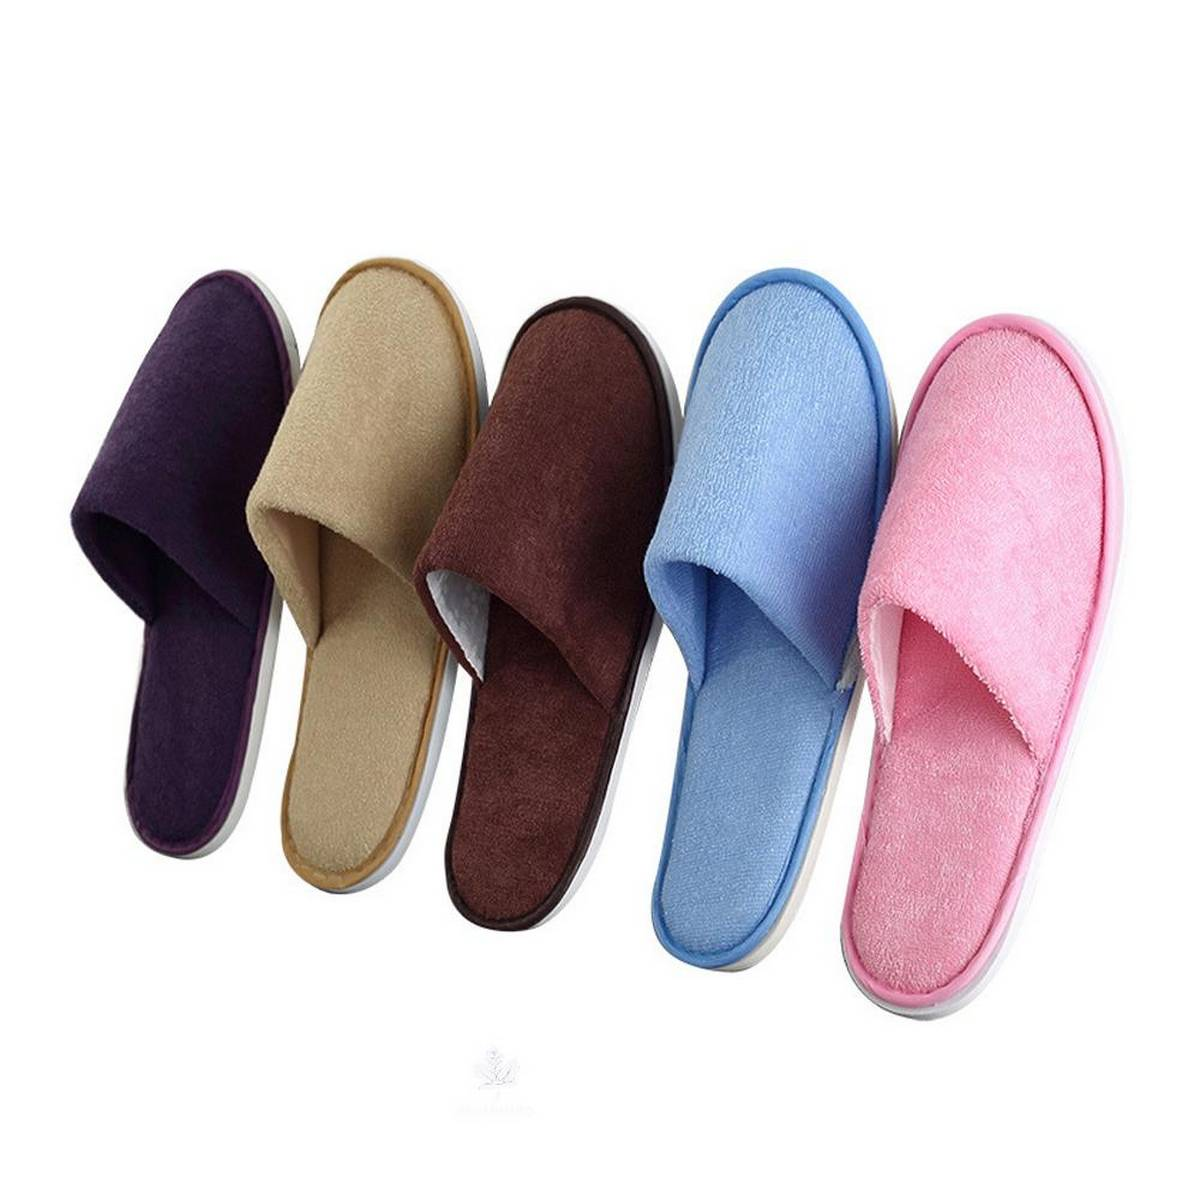 Soft Cotton Plush Slippers Cute Shoes Anti-Slip Indoor Floor Home House Furry Slippers Women Men Shoes For Bedroom